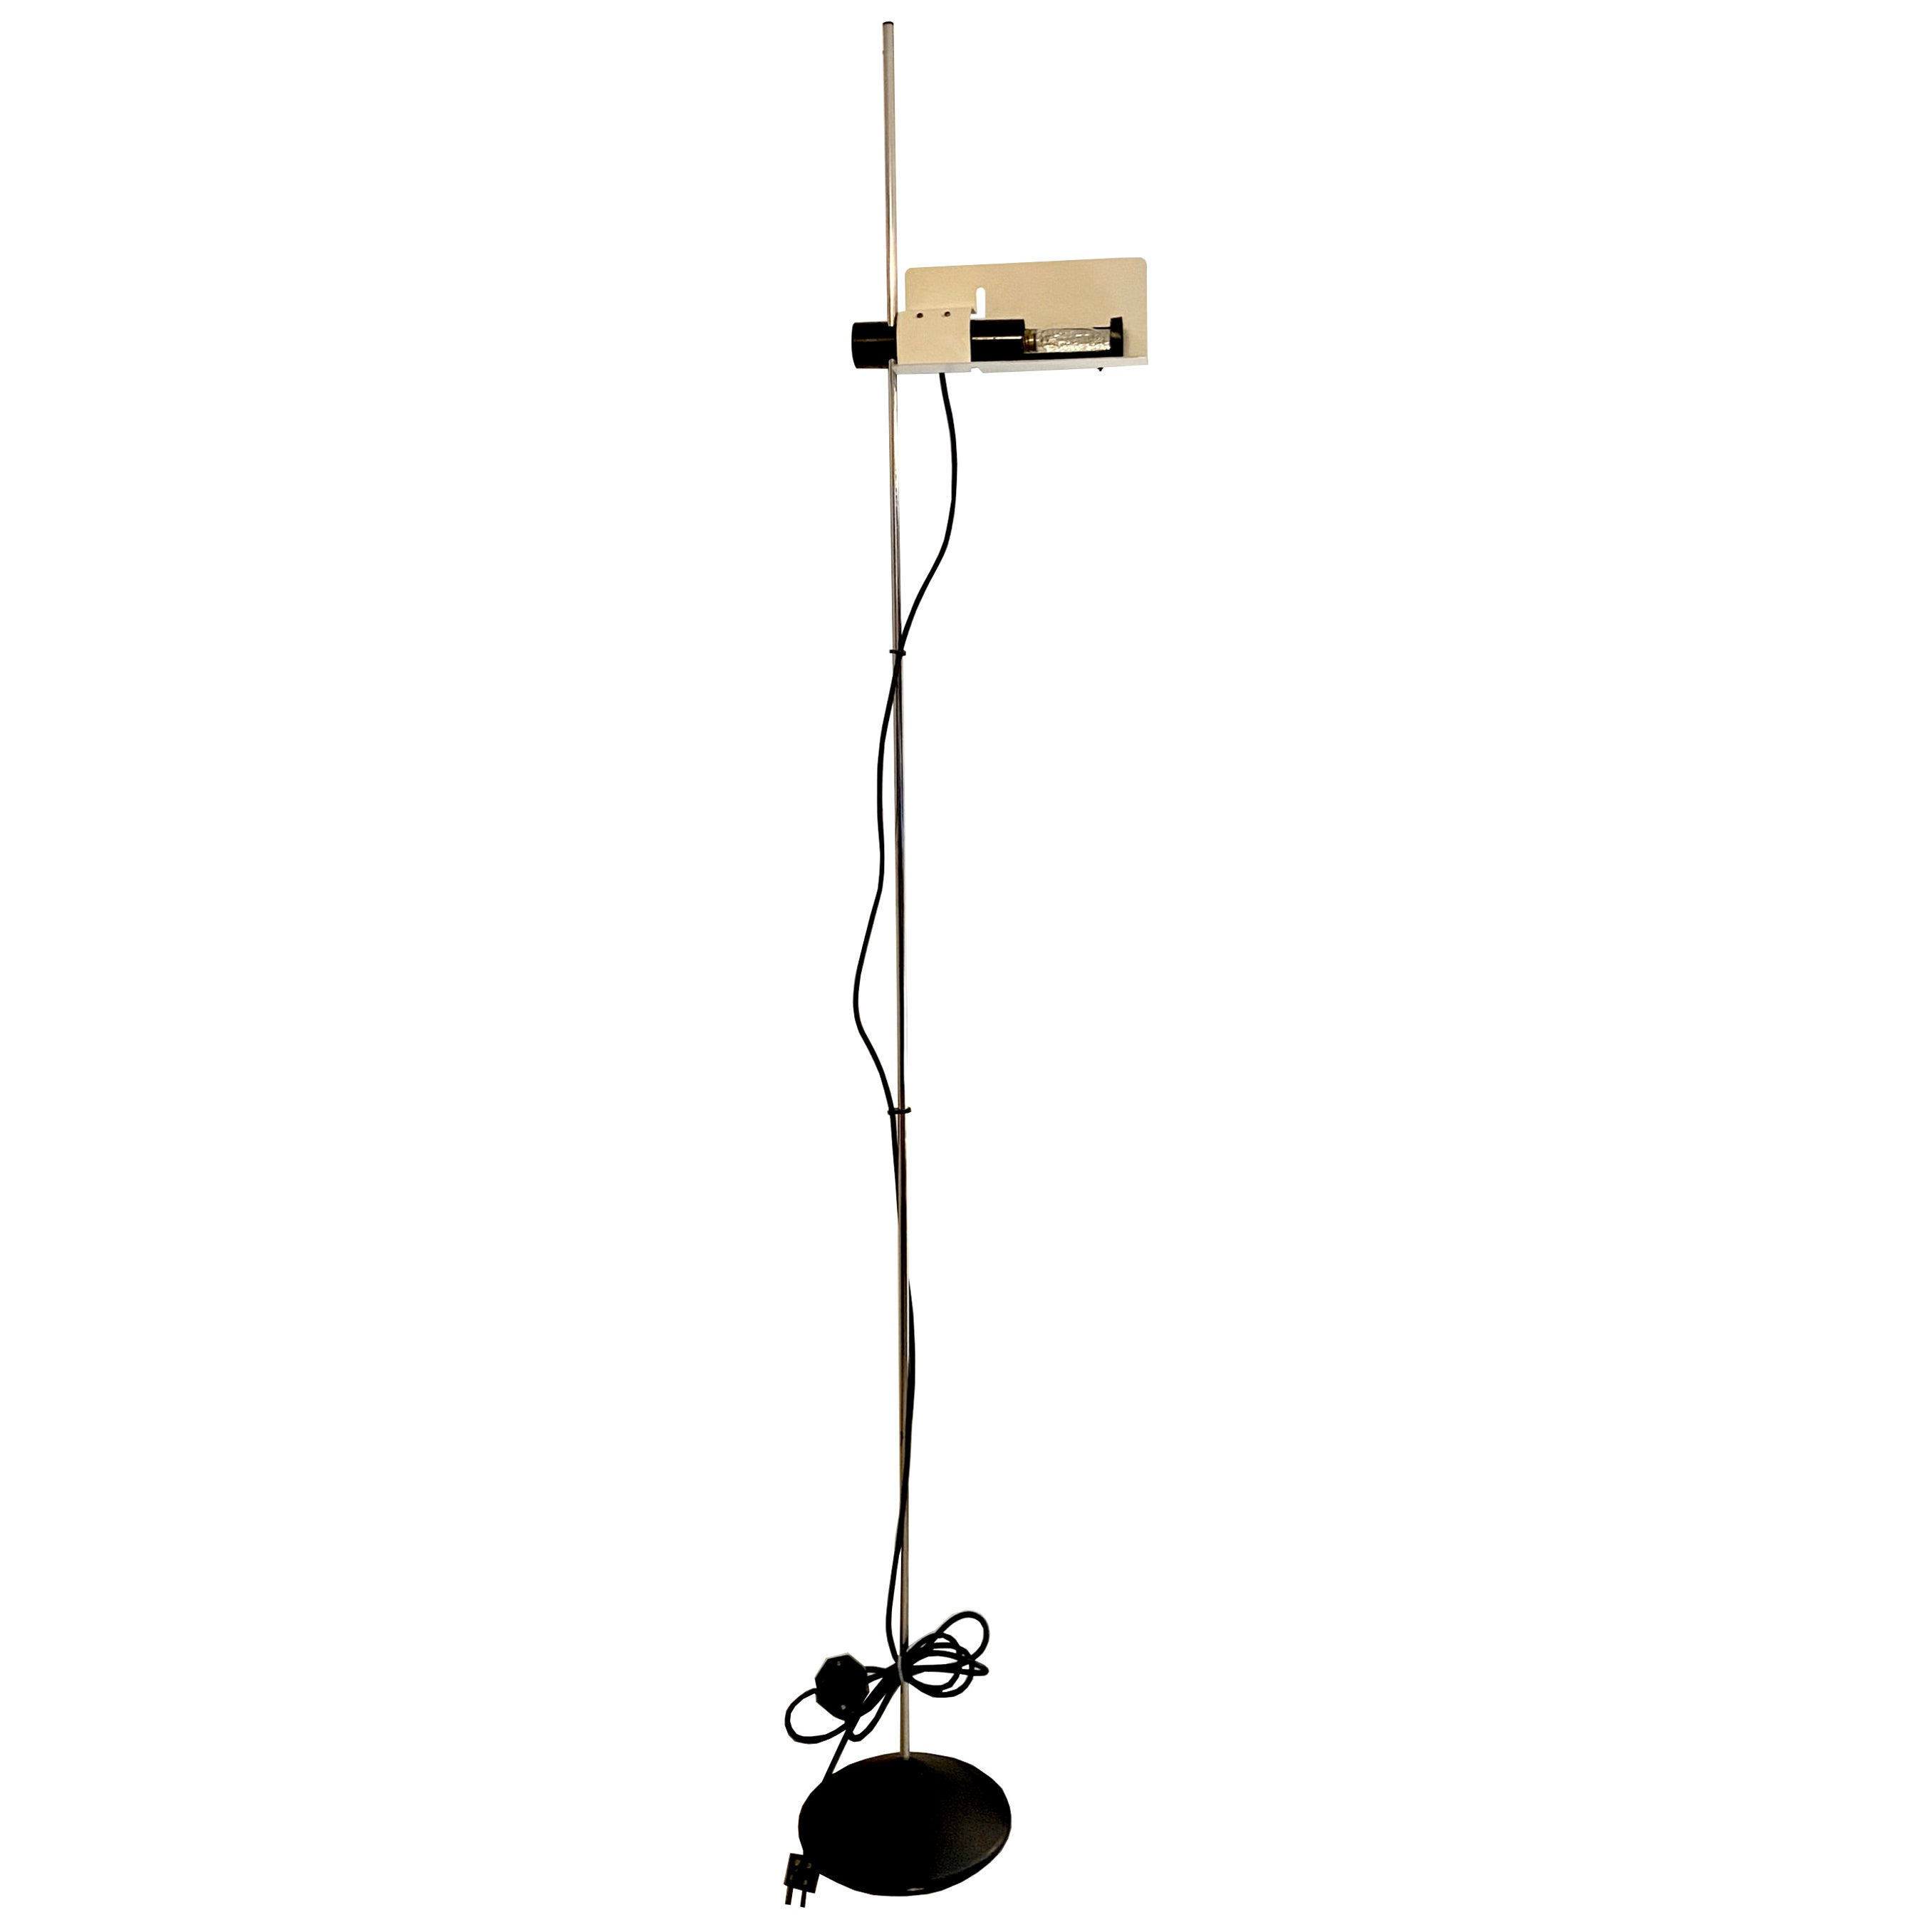 Barbieri & Marianelli for Tronconi Rare Floor Lamp, 1970s